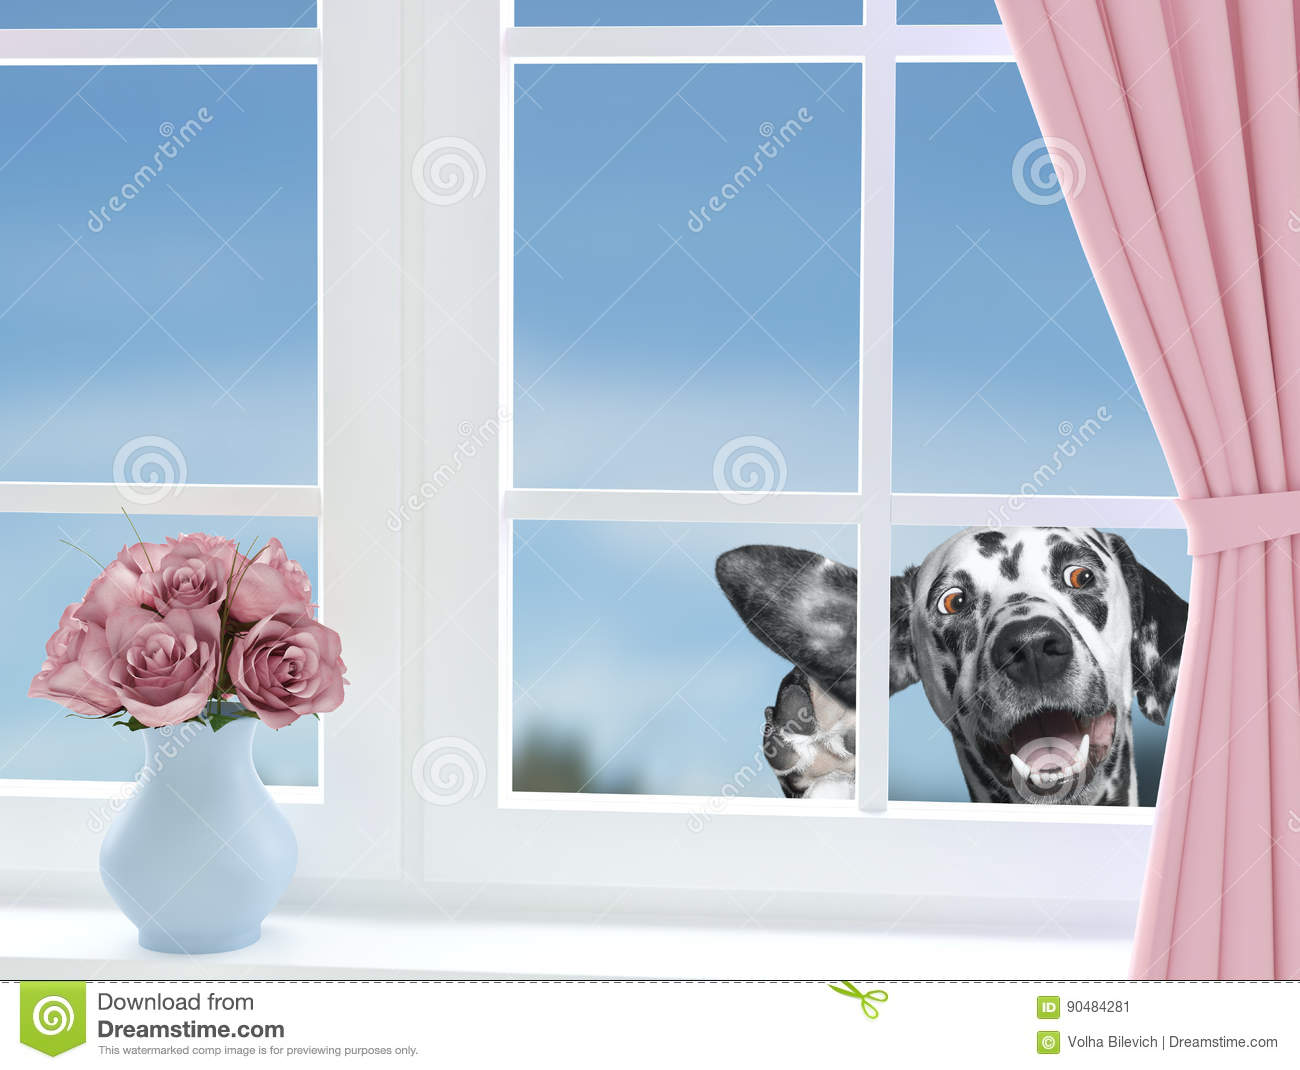 f57cb002 Cute Dog Looking Through The Window Stock Image - Image of hold ...